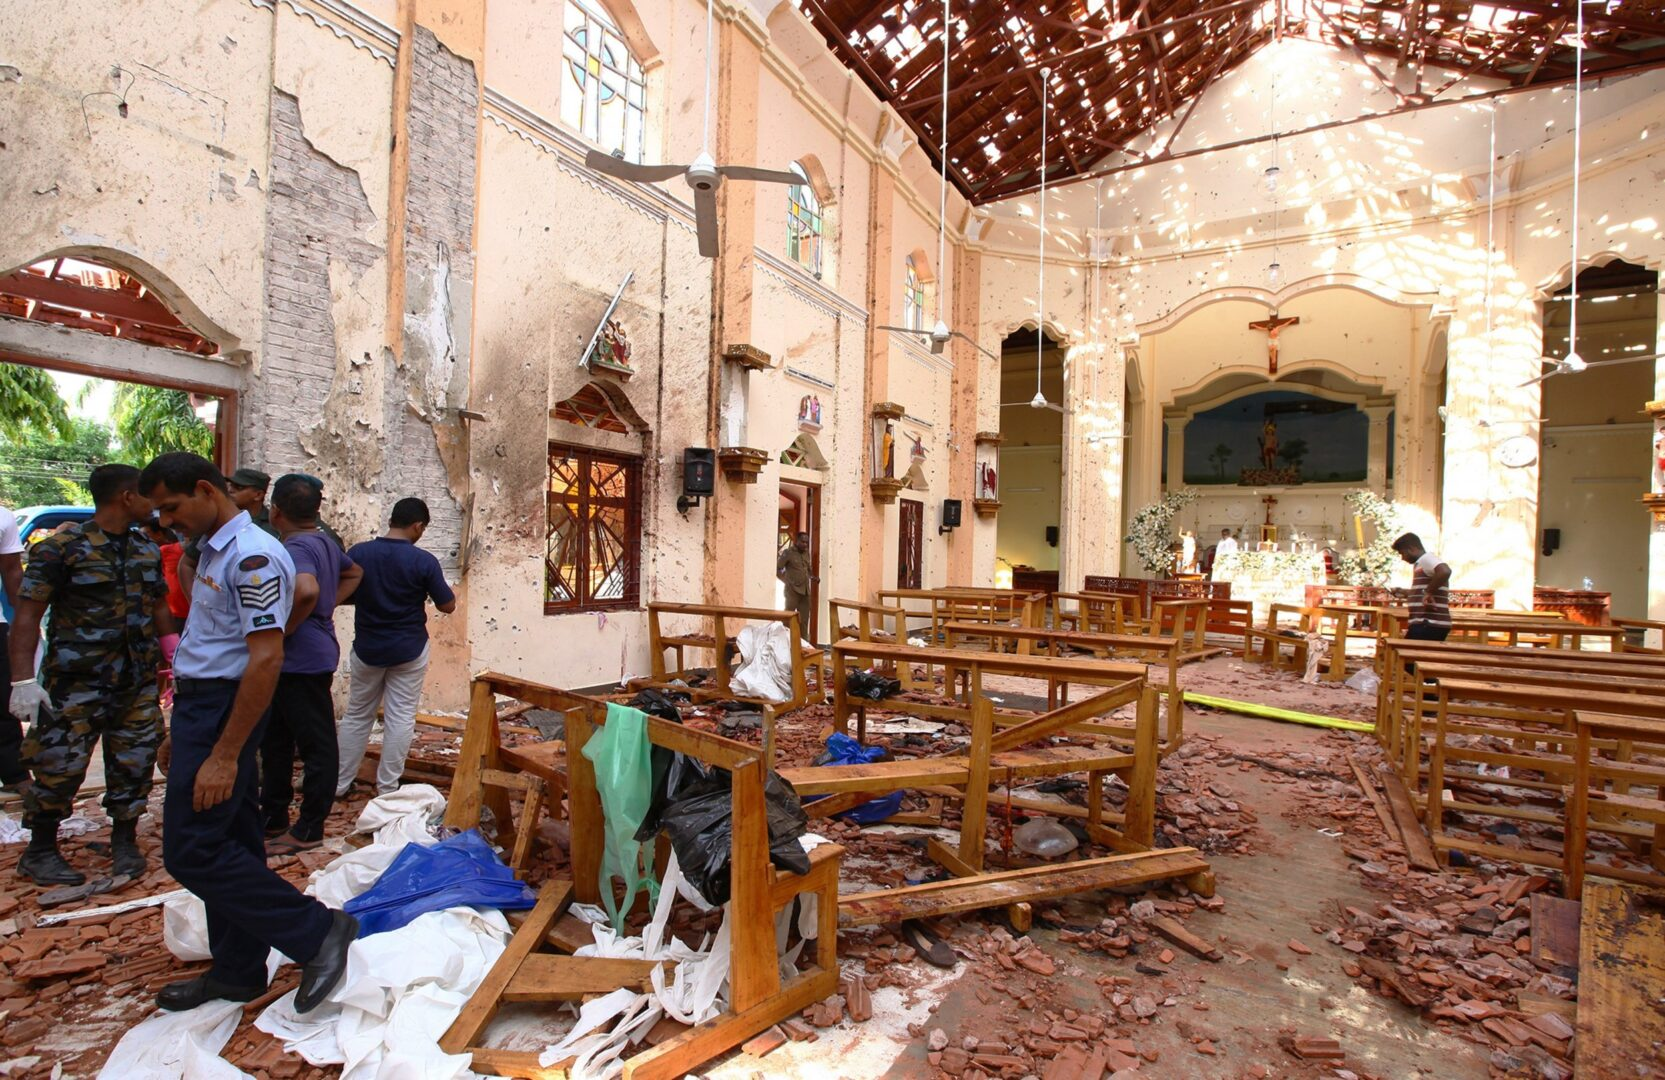 Op-Ed: Where is the outrage over the plight of persecuted Christians?